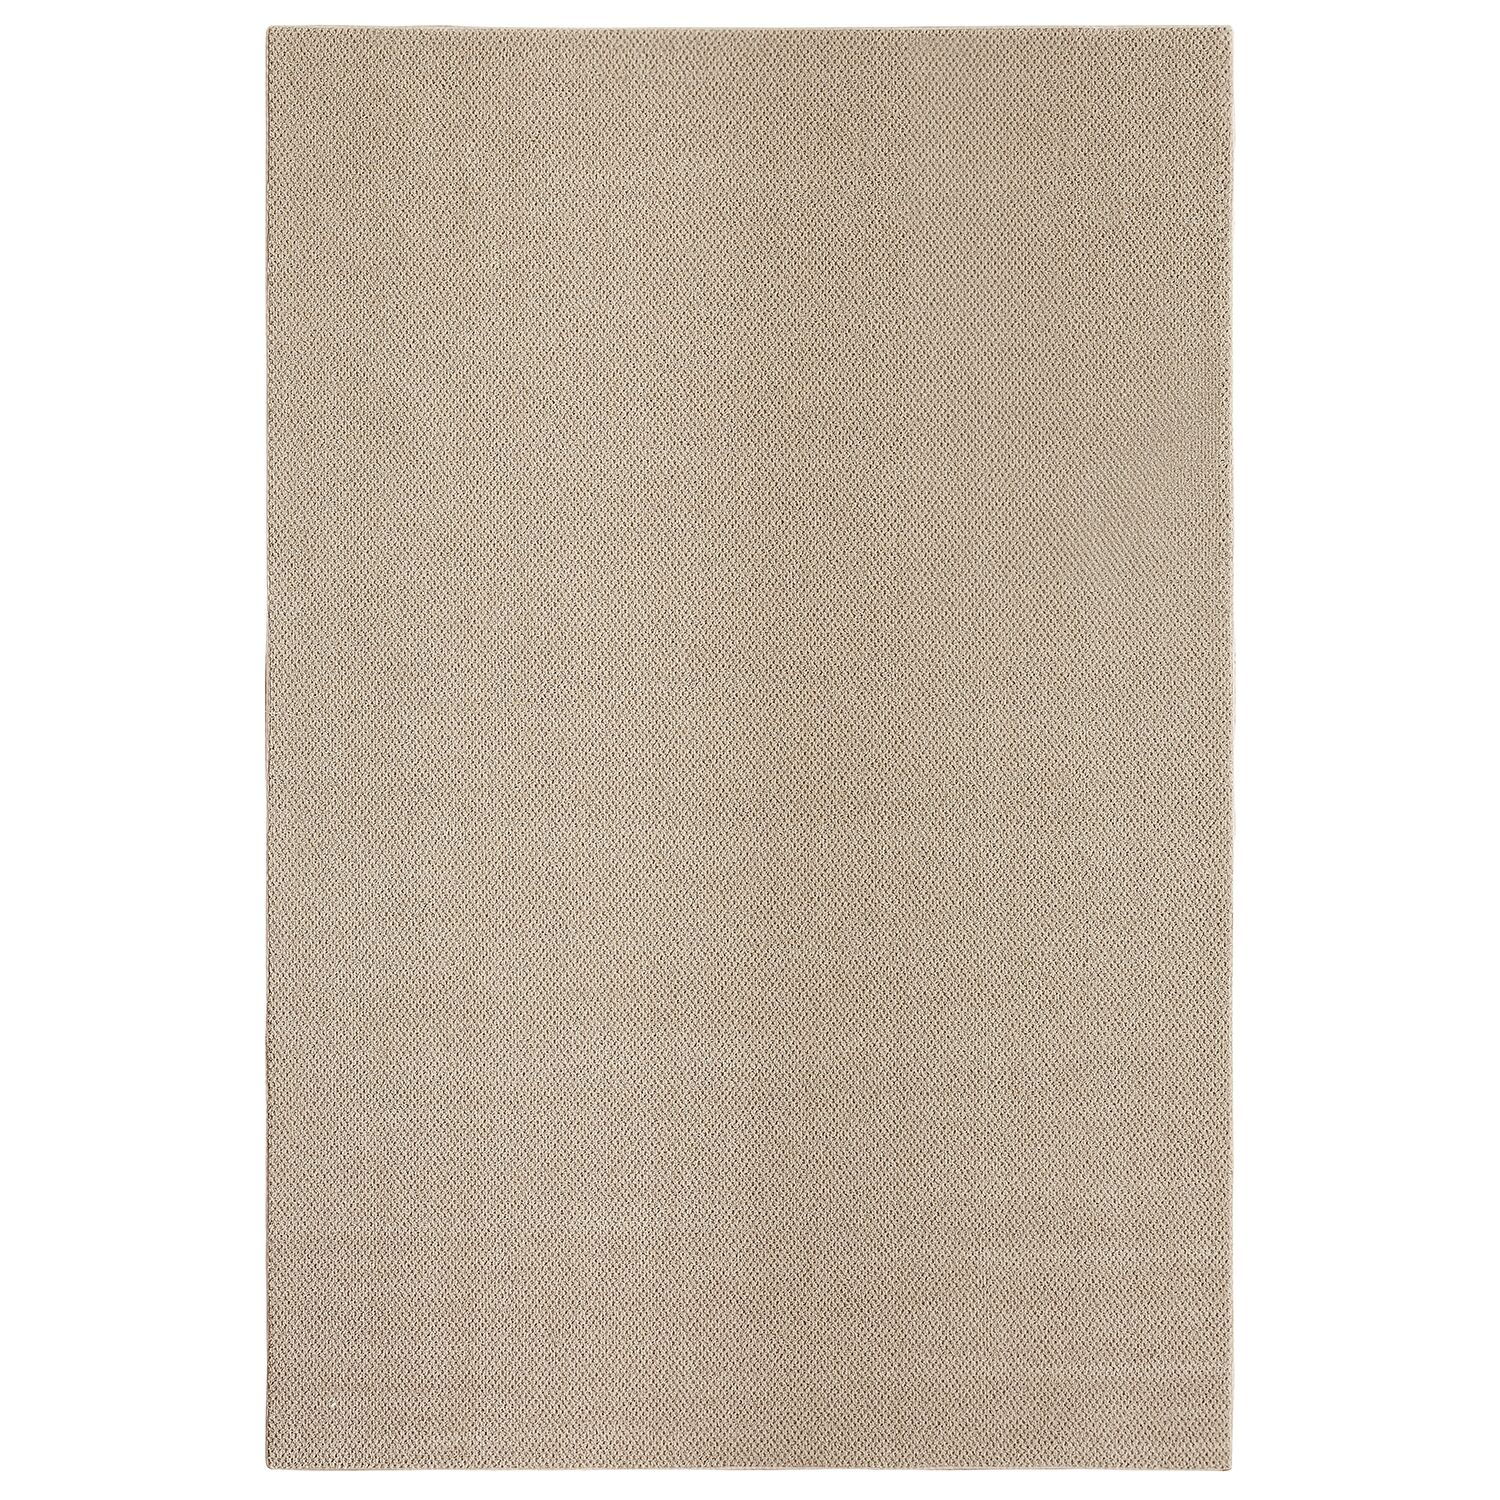 Bettie Hand-Tufted Tan Area Rug Rug Size: Rectangle 9' x 12'